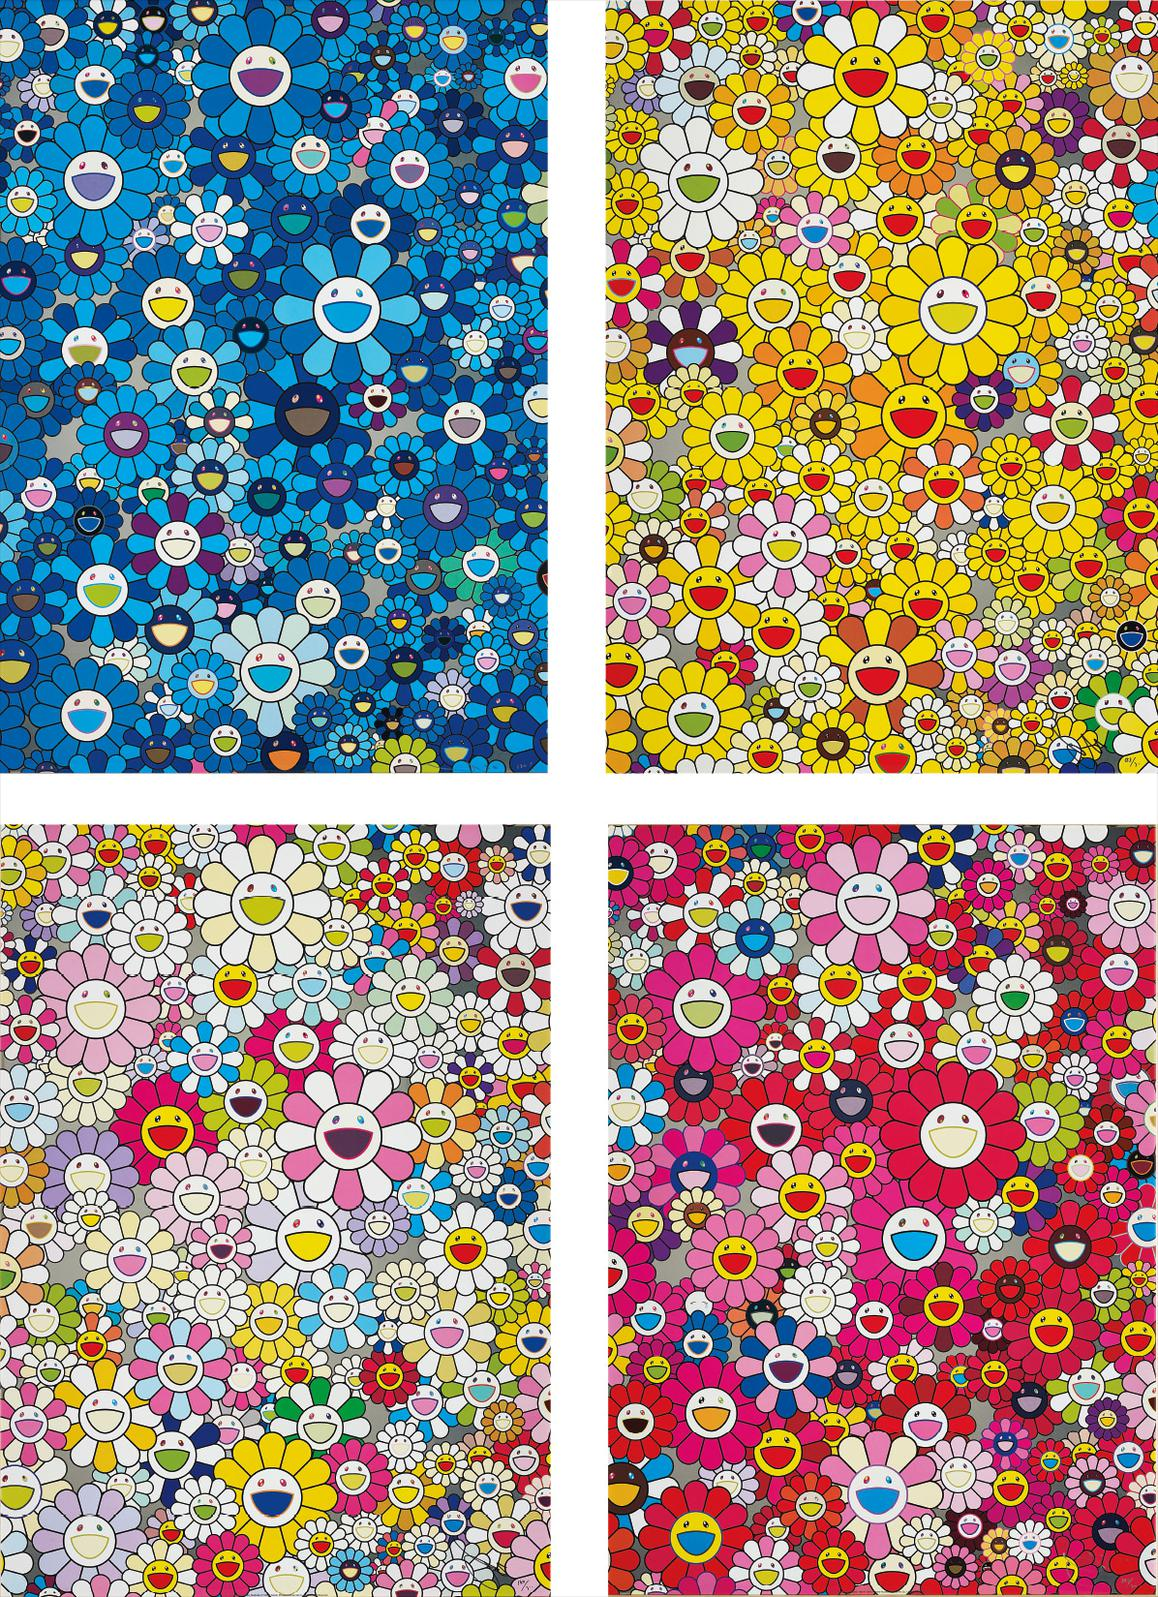 Takashi Murakami-An Homage To Ikb, 1957; An Homage To Monogold 1960 A; An Homage To Yves Klein, Multicolor A; And An Homage To Monopink 1960 A-2012